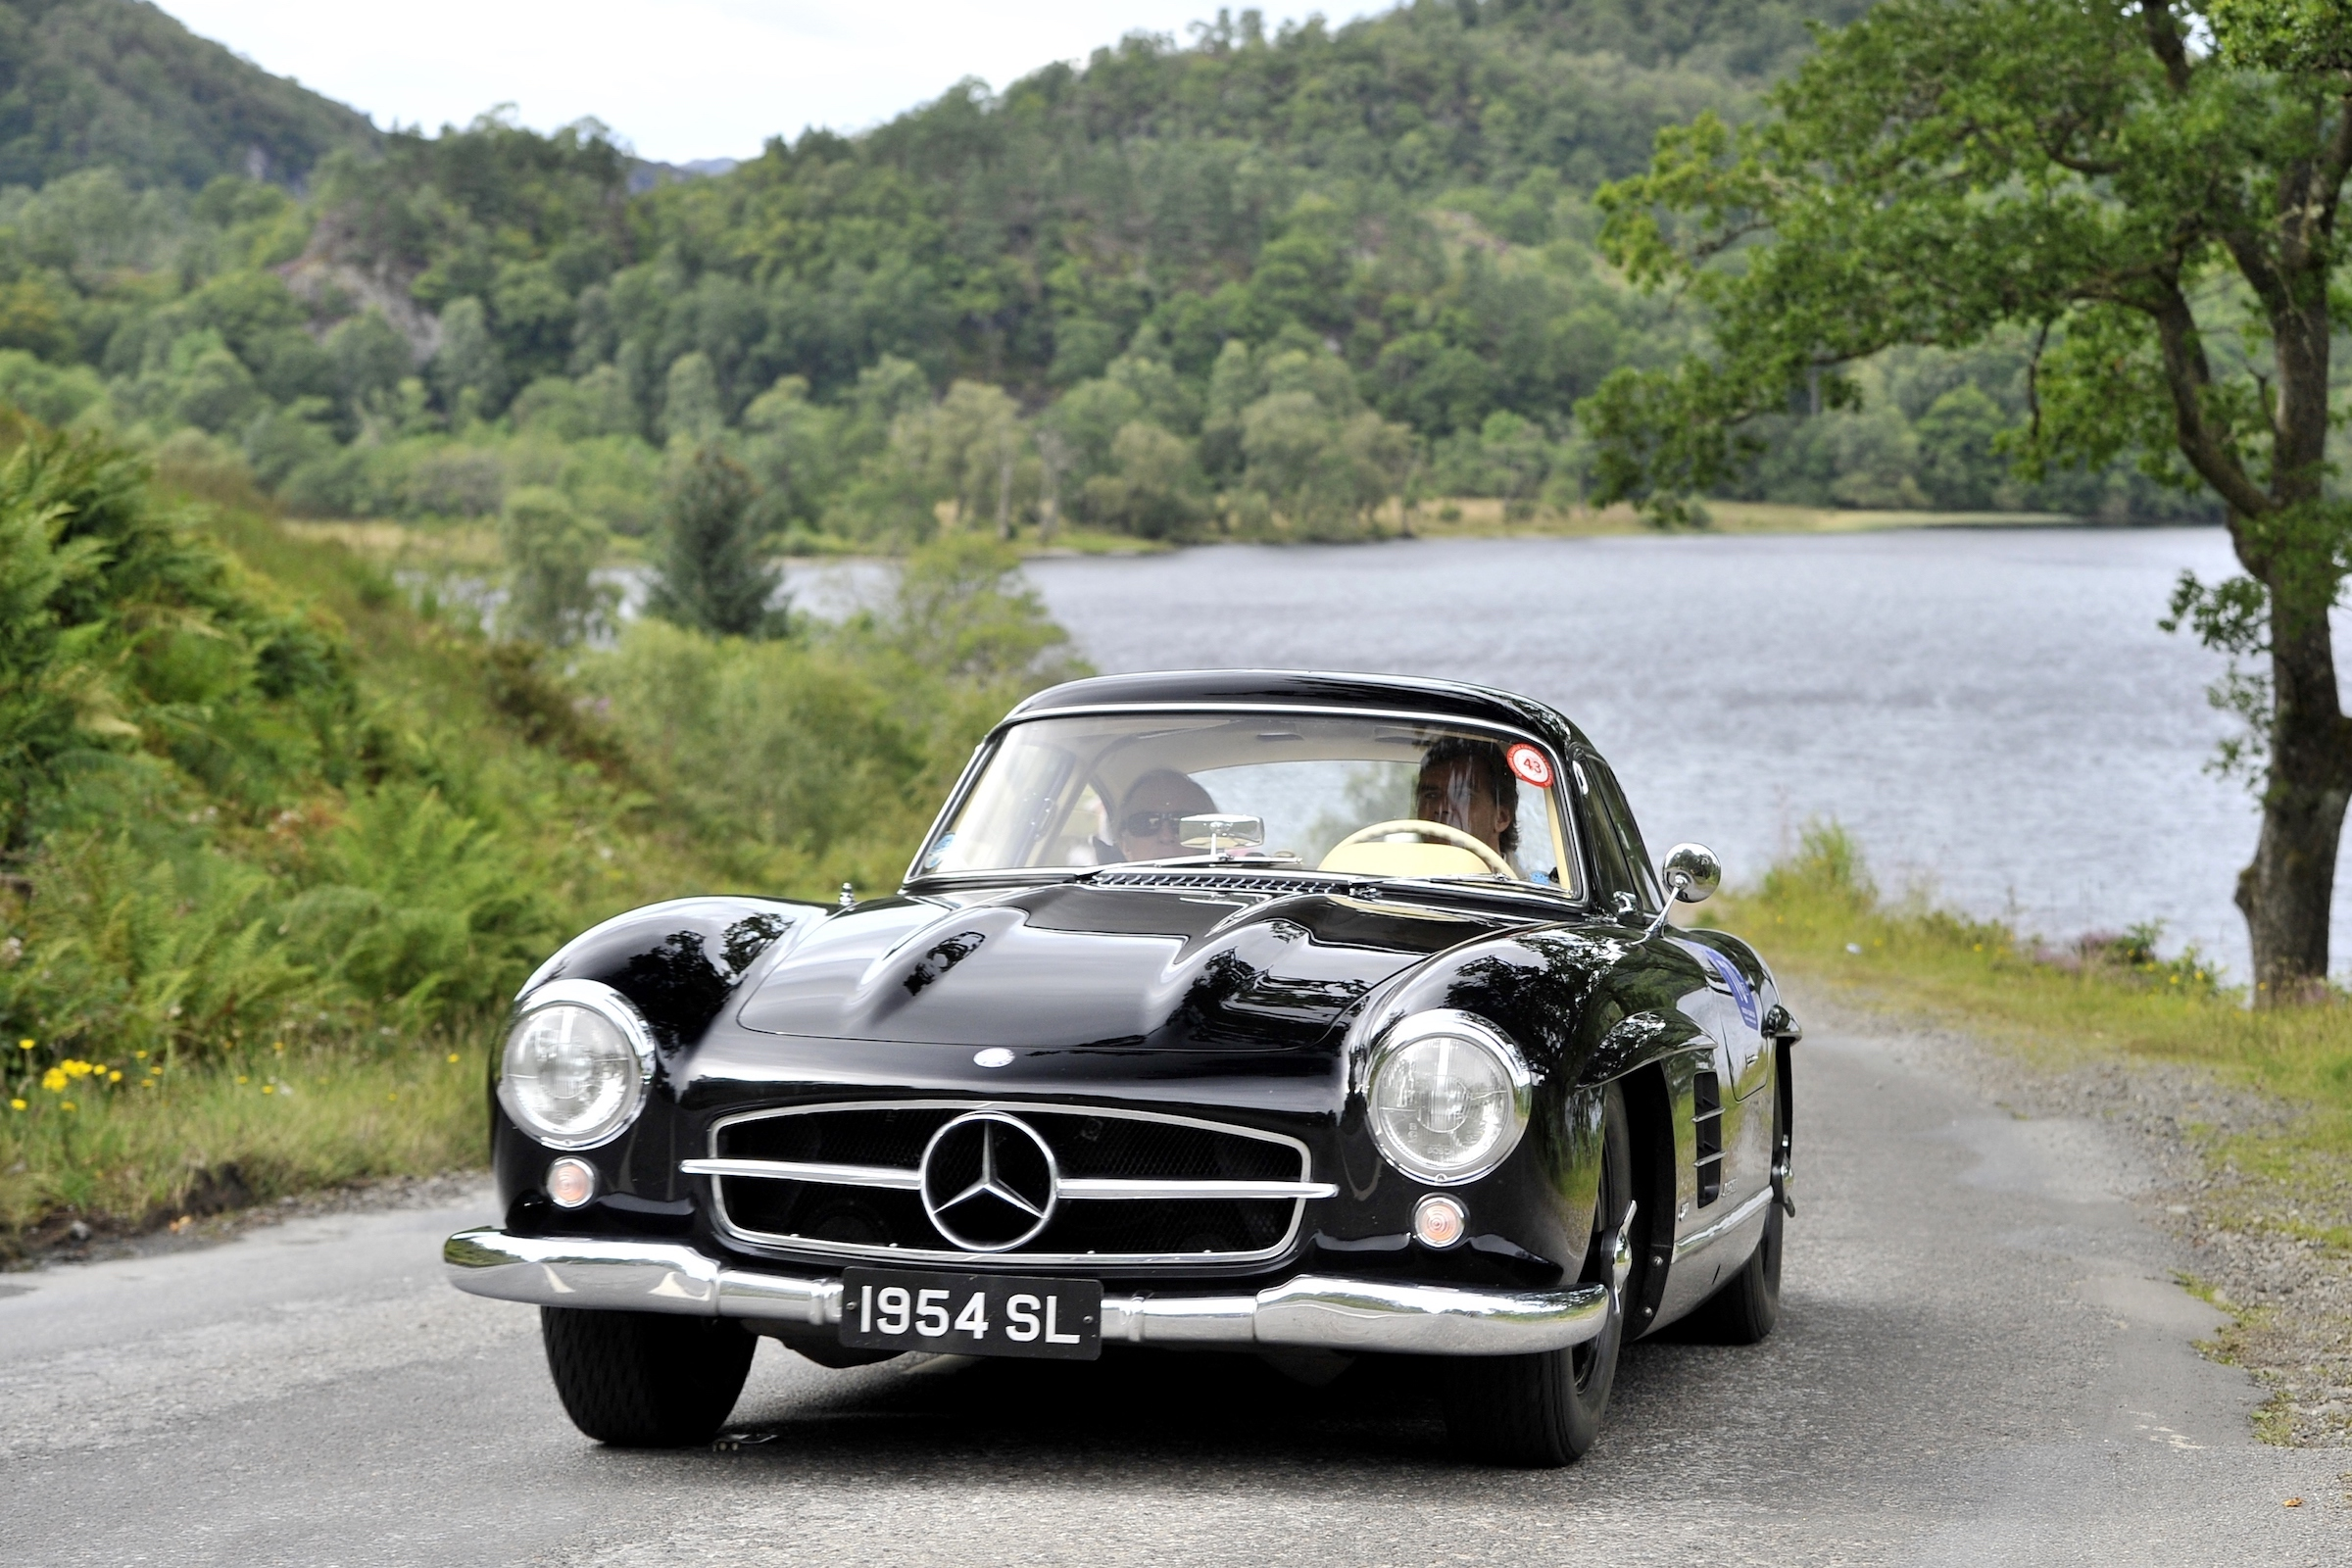 Mercedes Benz 300sl Gullwing And Roadster Buying Guide And Review 1954 1963 Auto Express